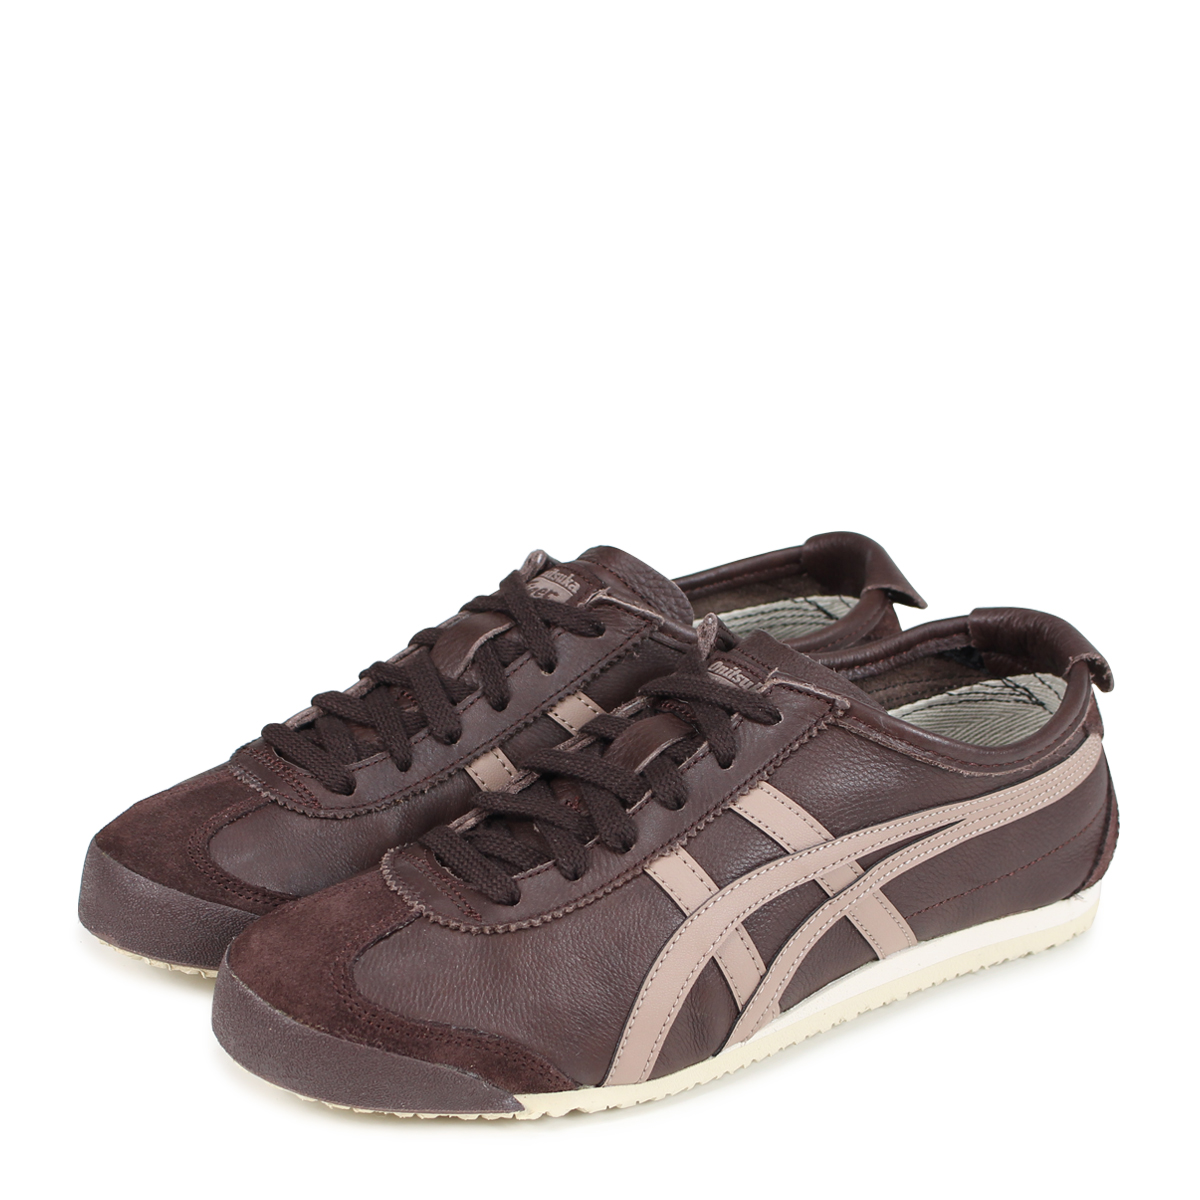 sale retailer b53f6 be2f1 Onitsuka Tiger MEXICO 66 Onitsuka tiger Mexico 66 men's lady's sneakers  1183A201-201 brown [load planned Shinnyu load in reservation product 8/2 ...